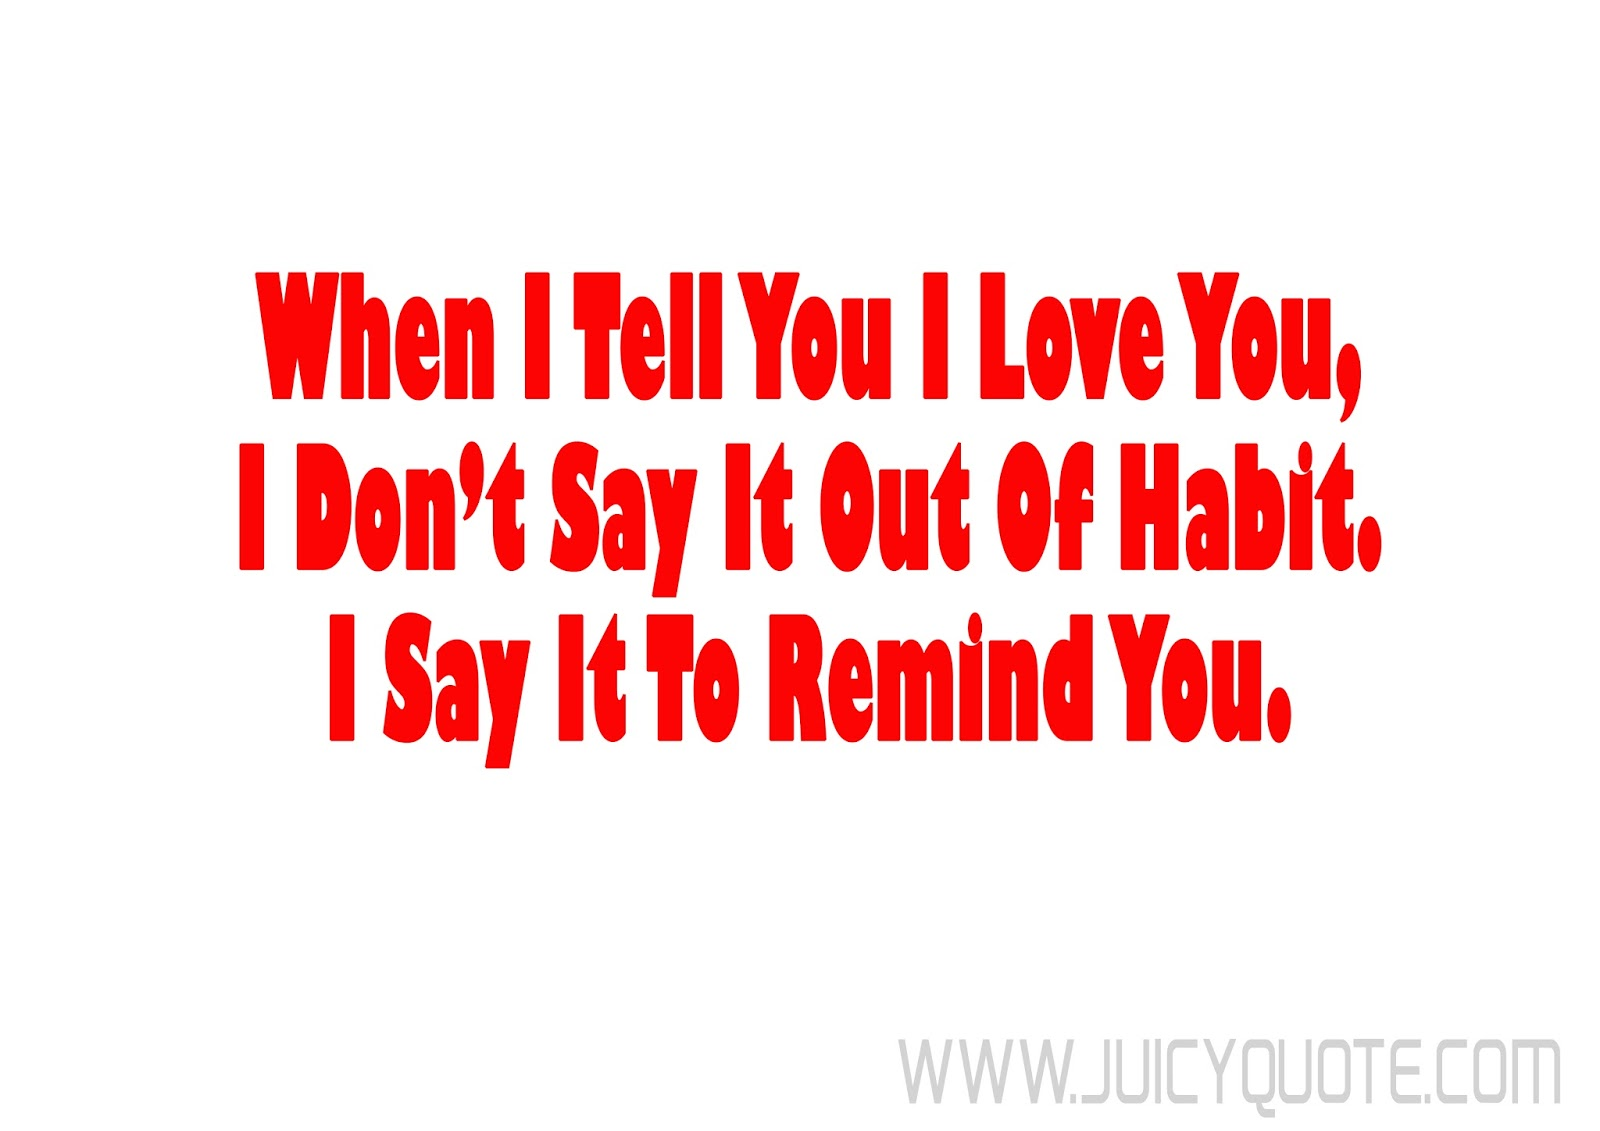 Love Quotes And Sayings For Him Best Valentine's Day Love Messagesquotes And Sayings For Him